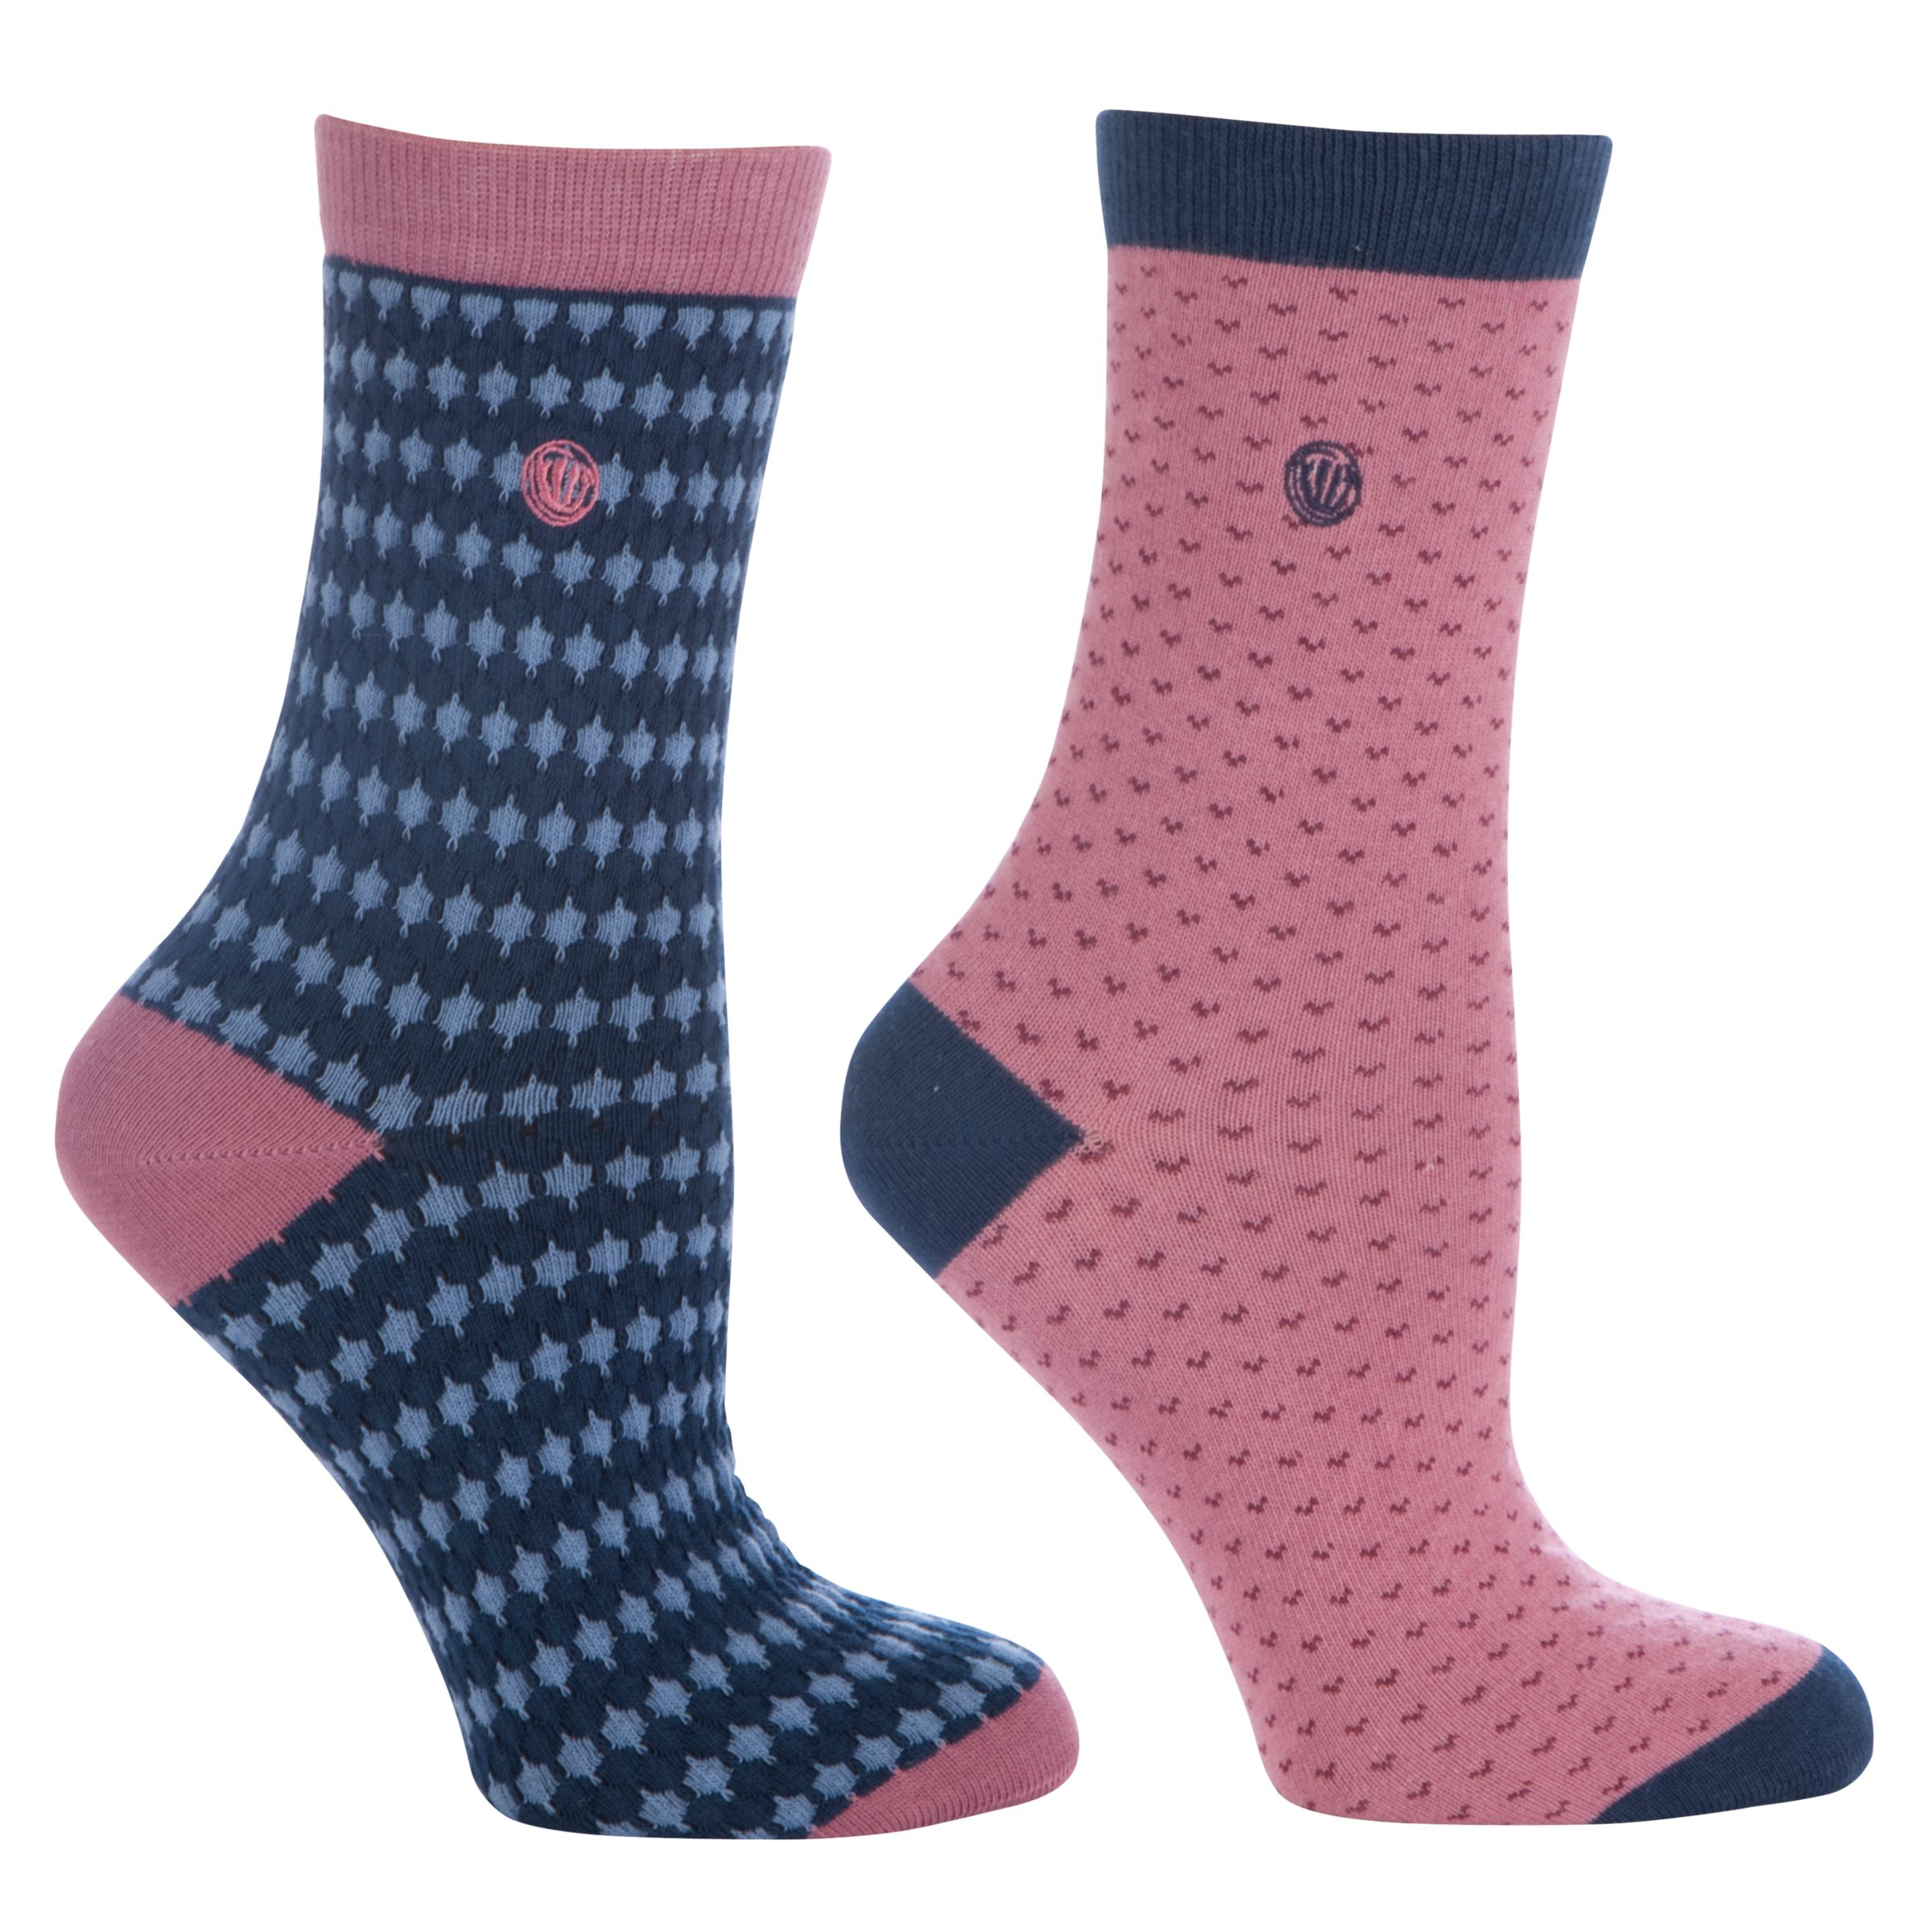 Fat Face Stripe and Spot Patterned Socks, Pack of 2, Navy